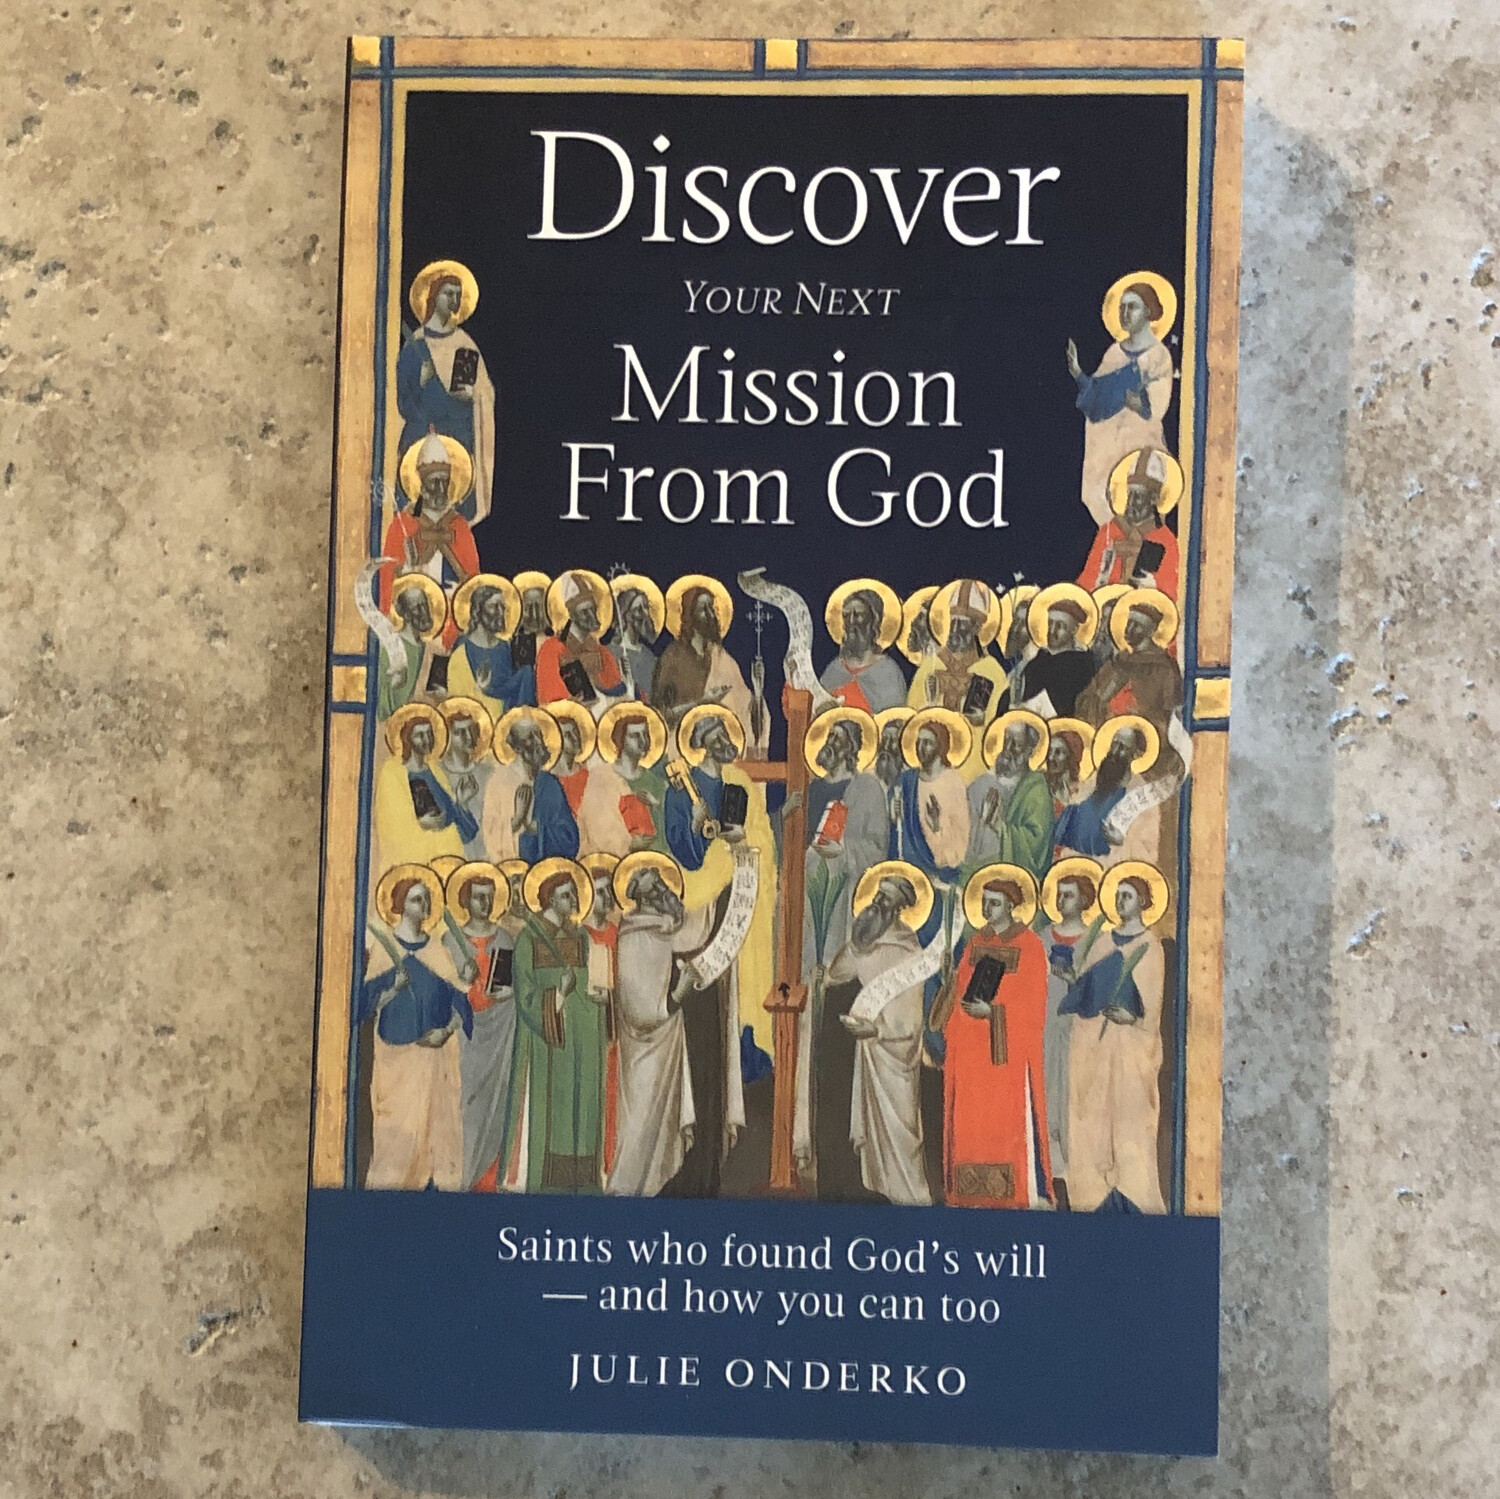 Discover Your Next Mission from God by Julie Onderko